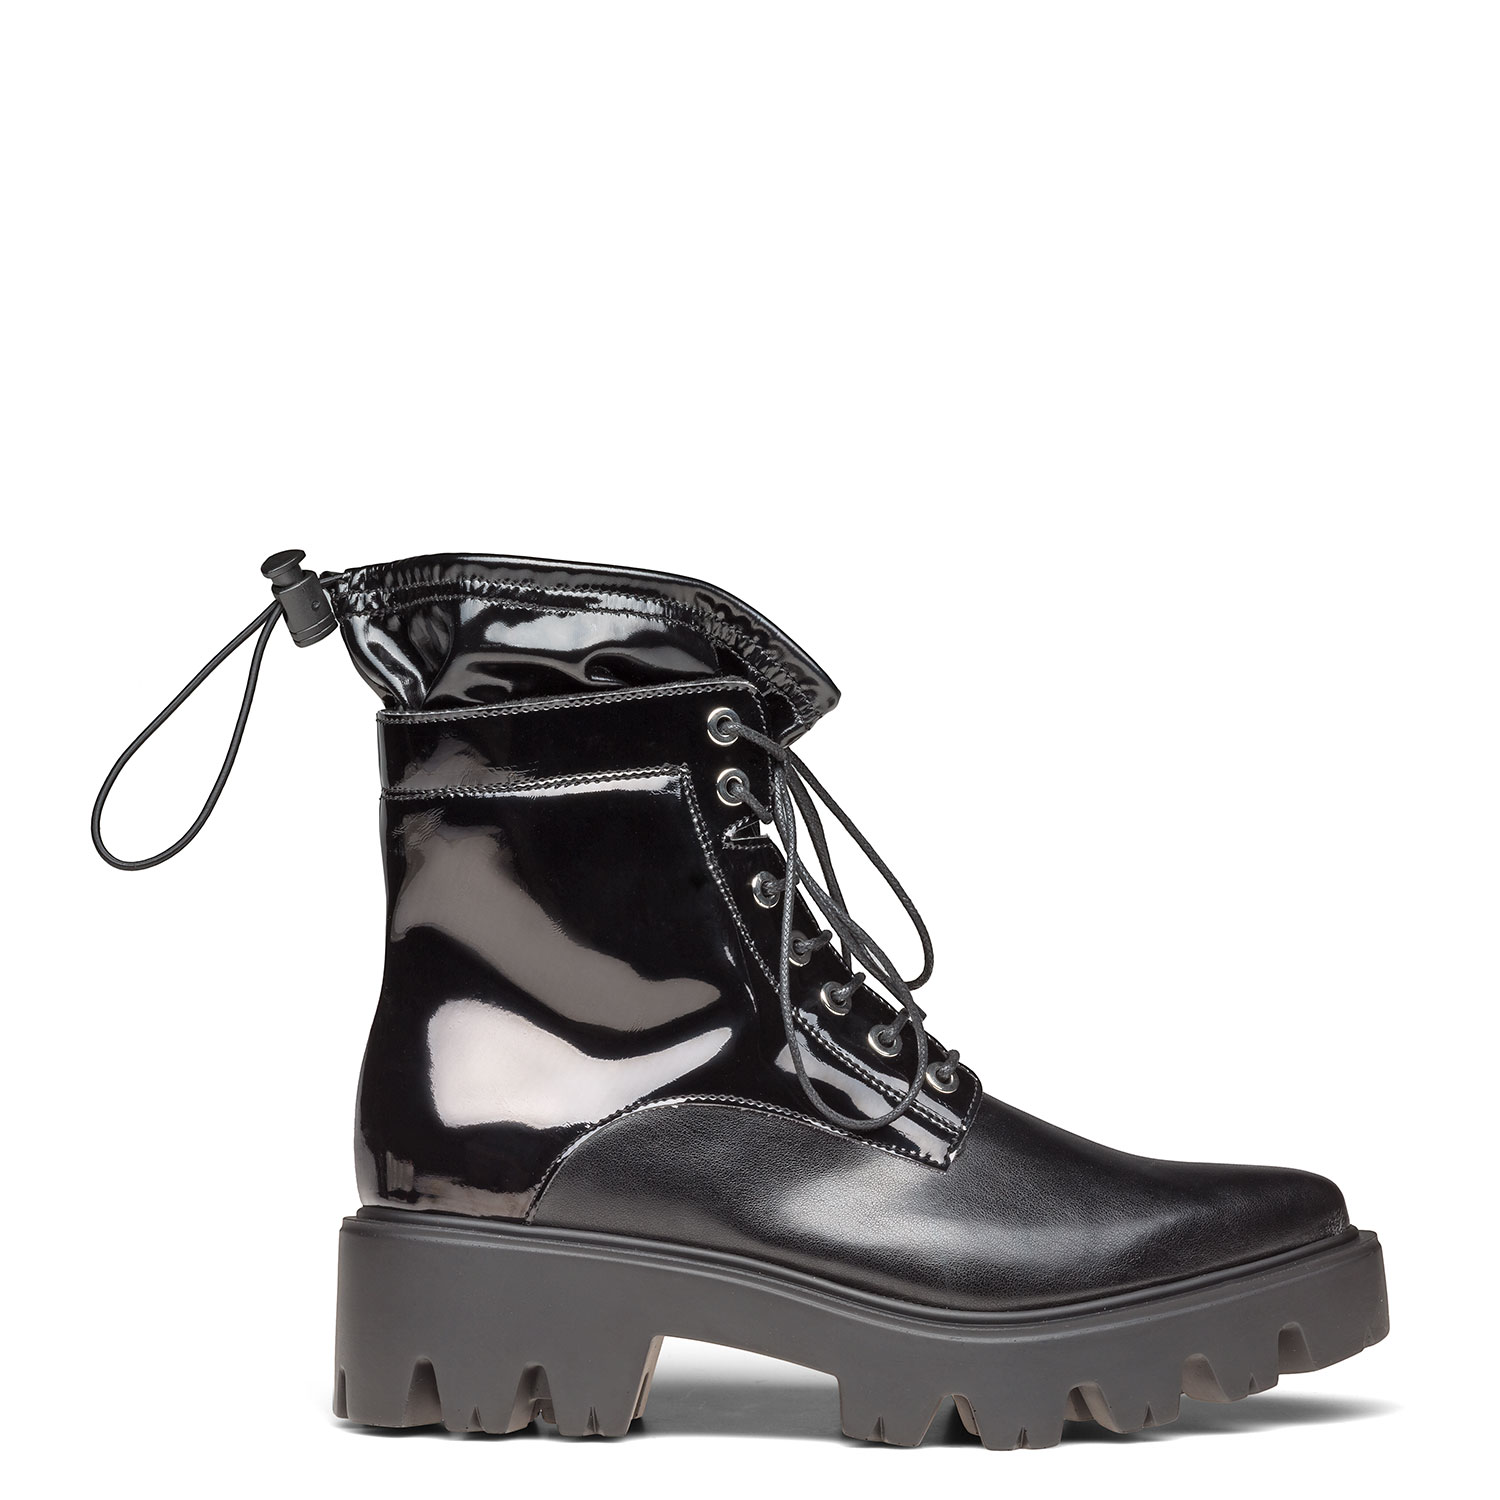 Women's ankle boots CARLO PAZOLINI AS-RES2-1